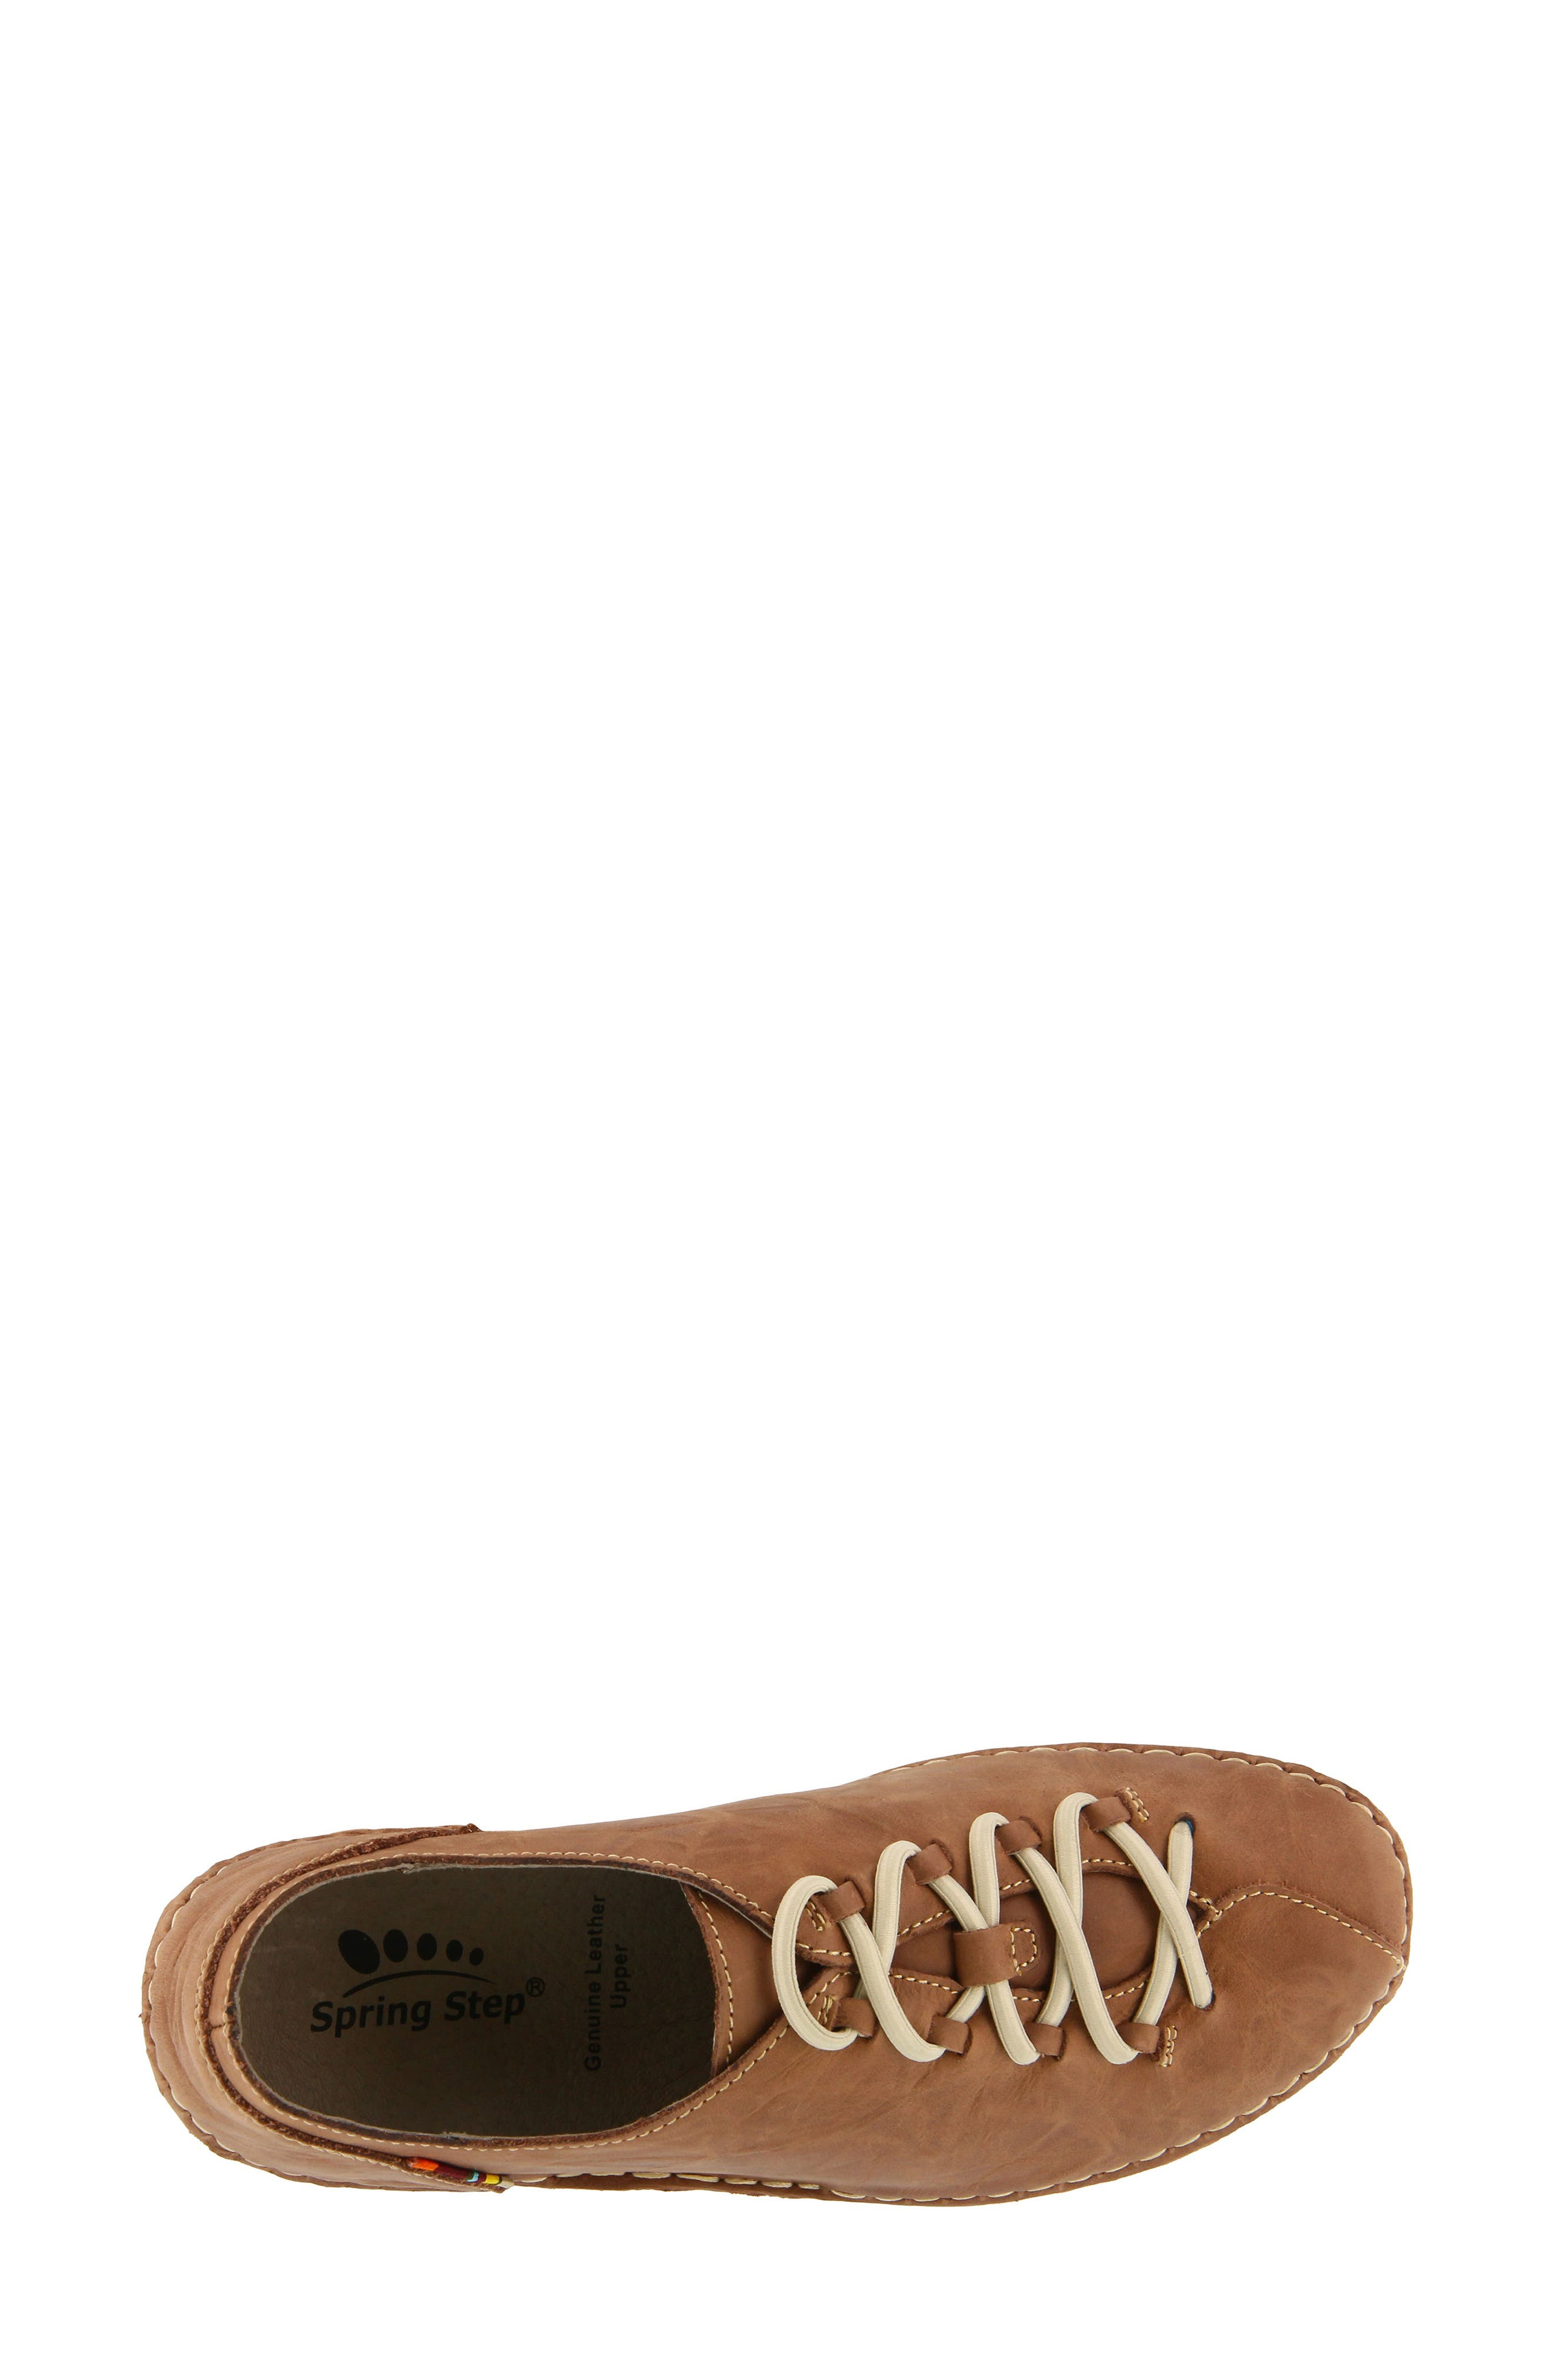 Carhop Sneaker,                             Alternate thumbnail 4, color,                             BROWN LEATHER